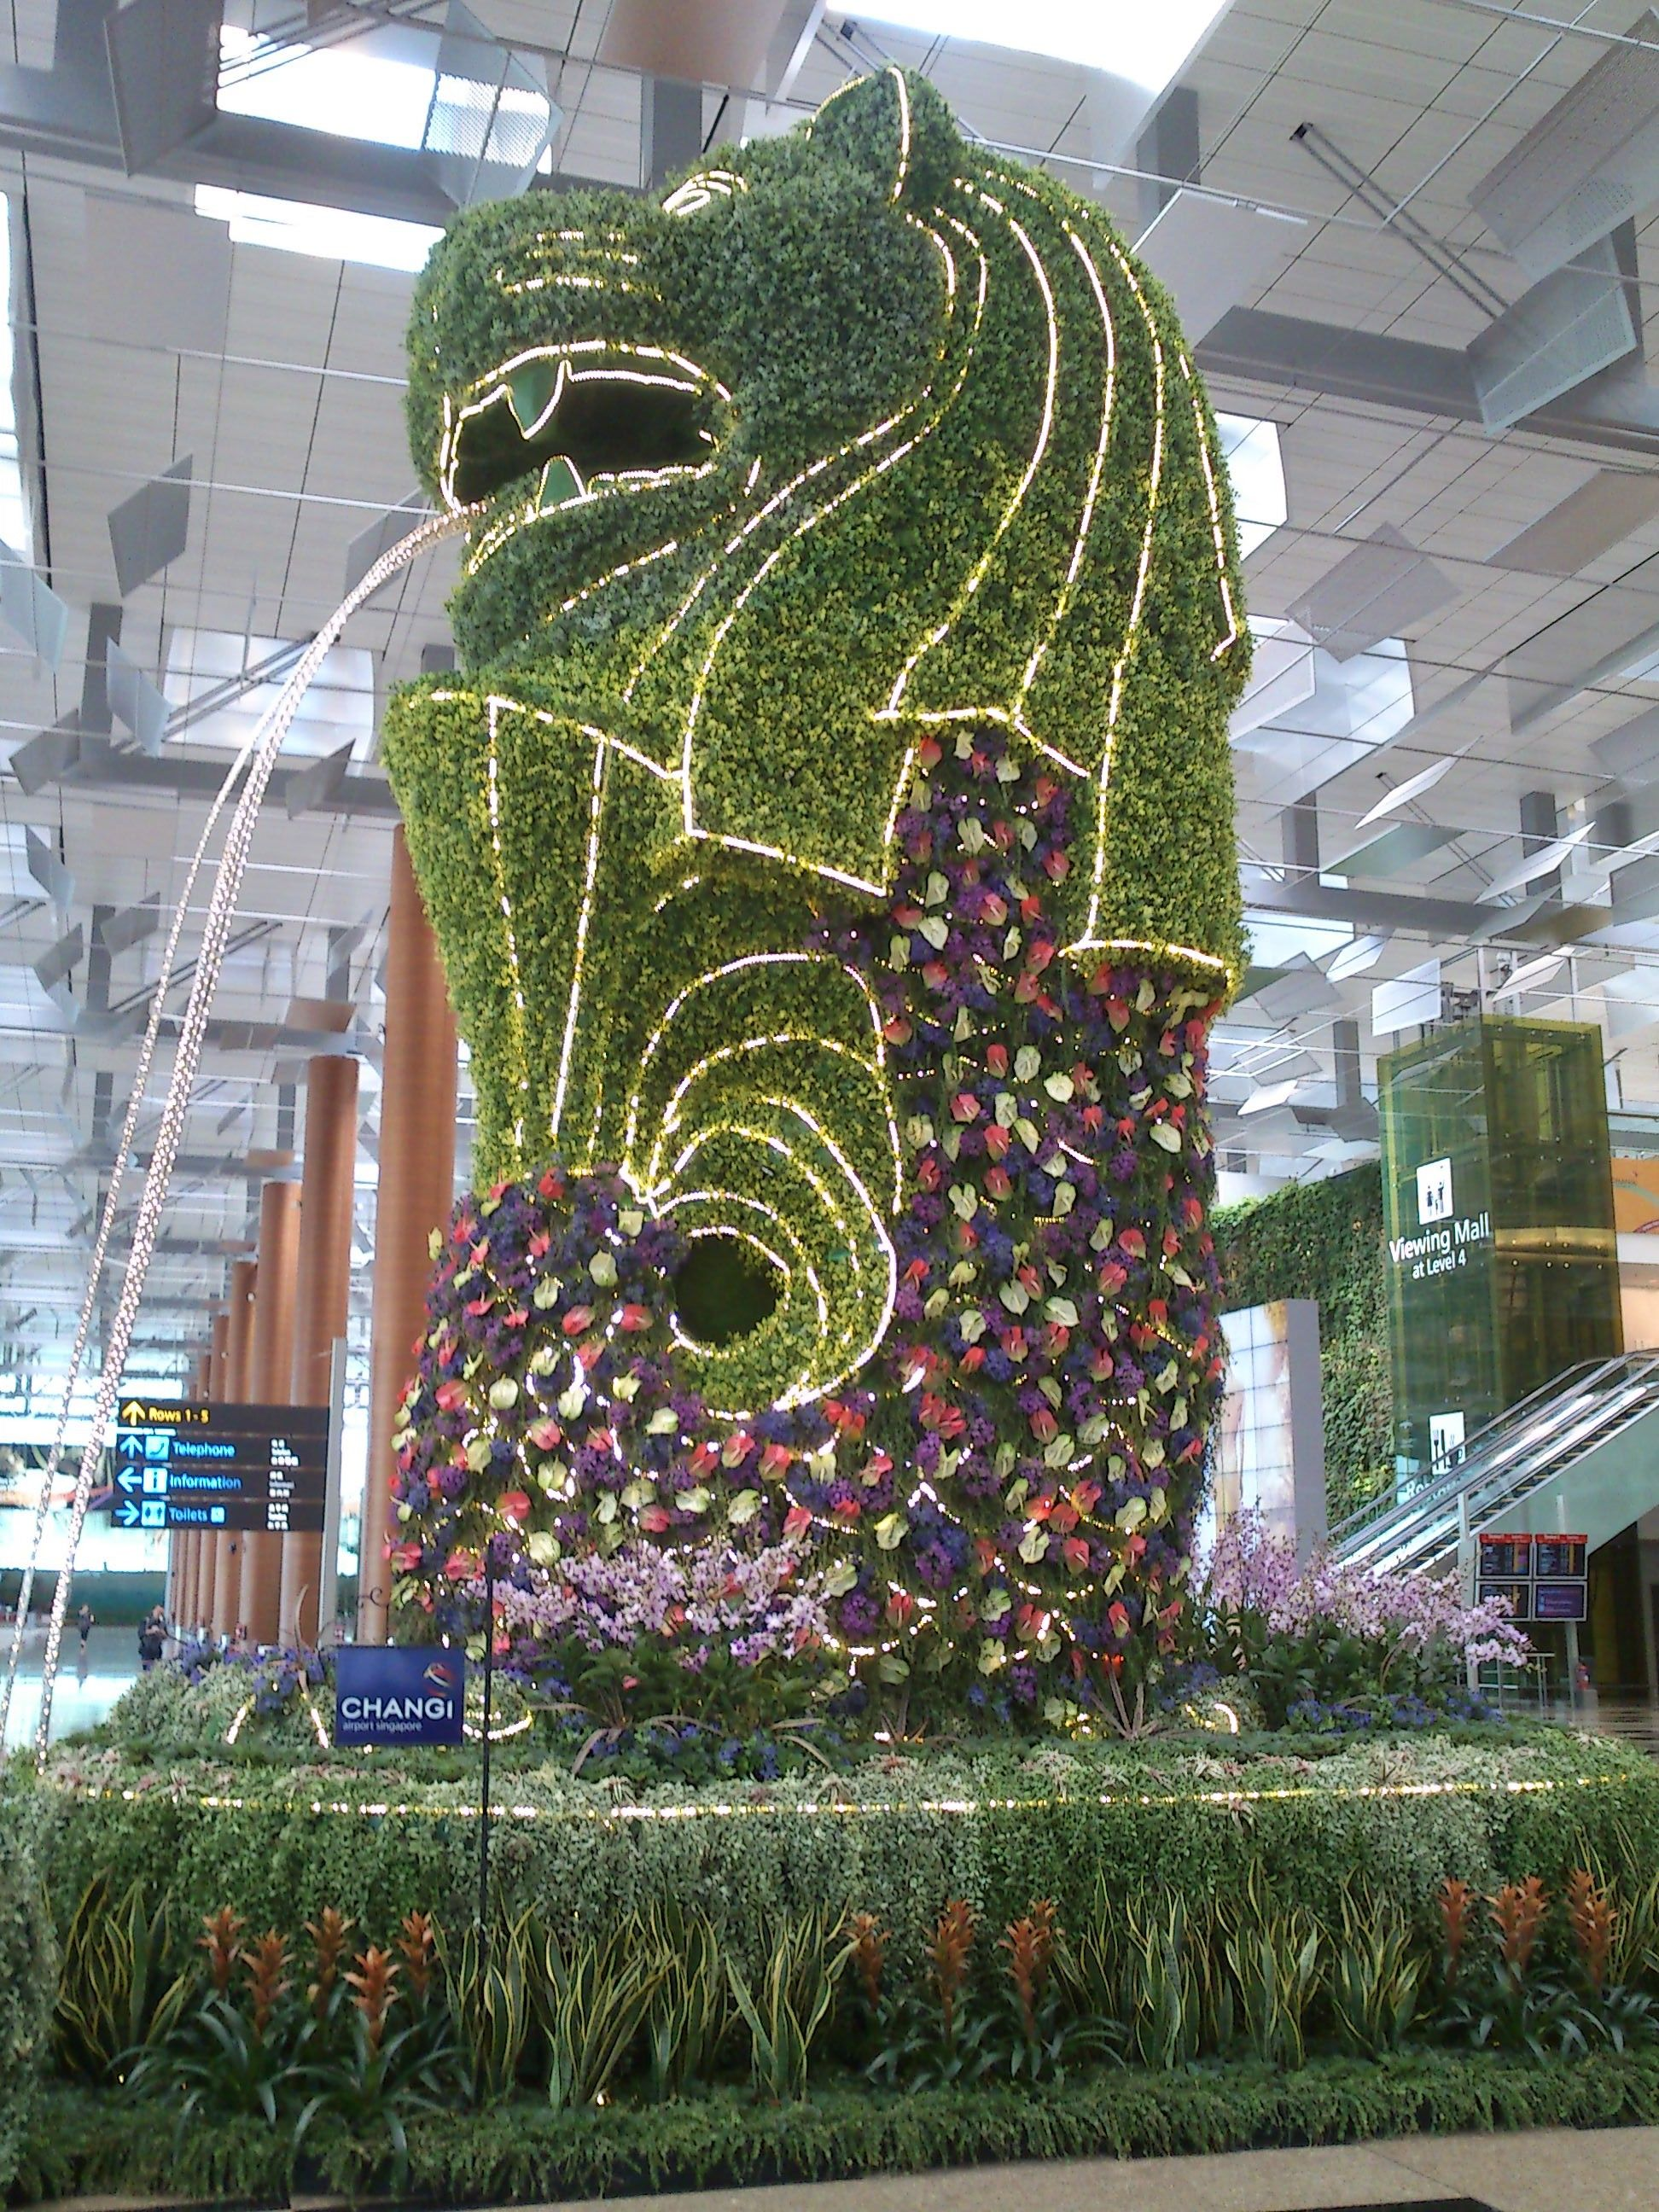 Merlion, Changi Airport, Singapore Changi airport